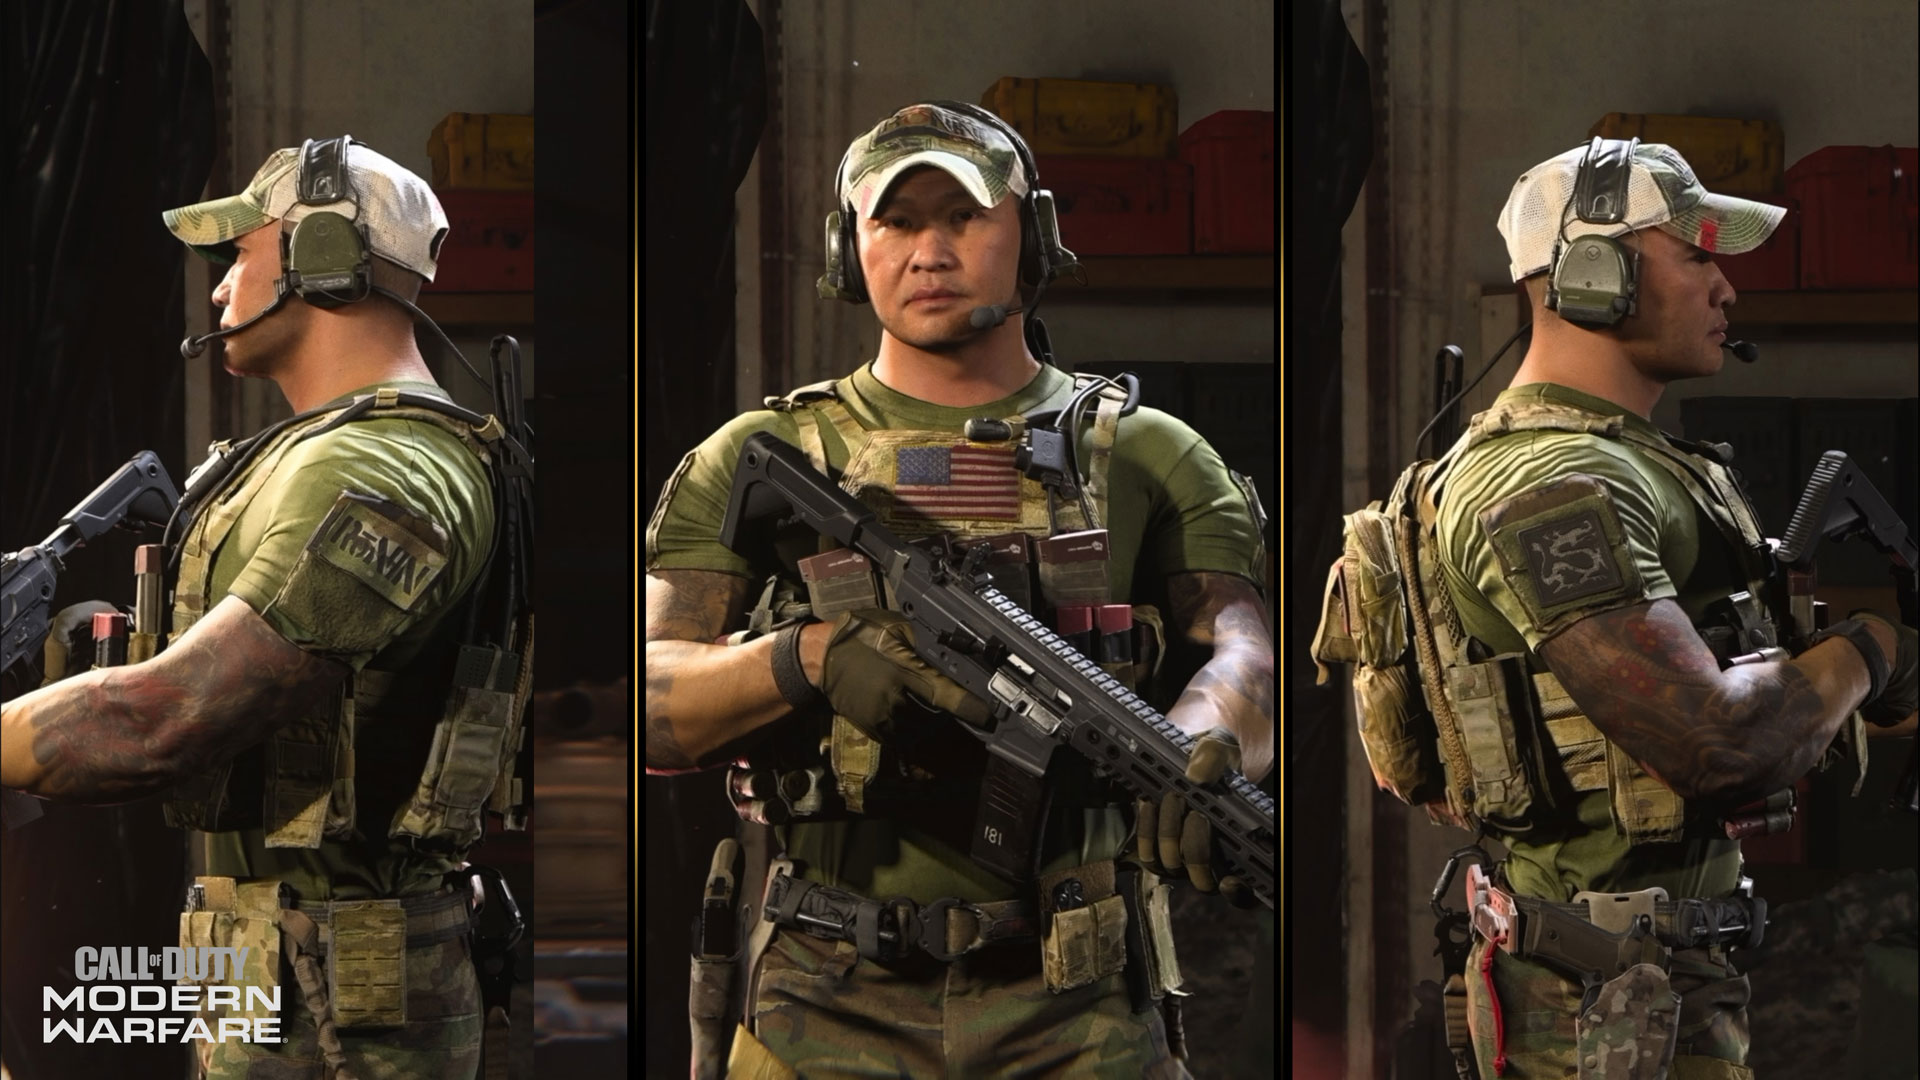 This Week in Call of Duty® - April 20 - Image 6